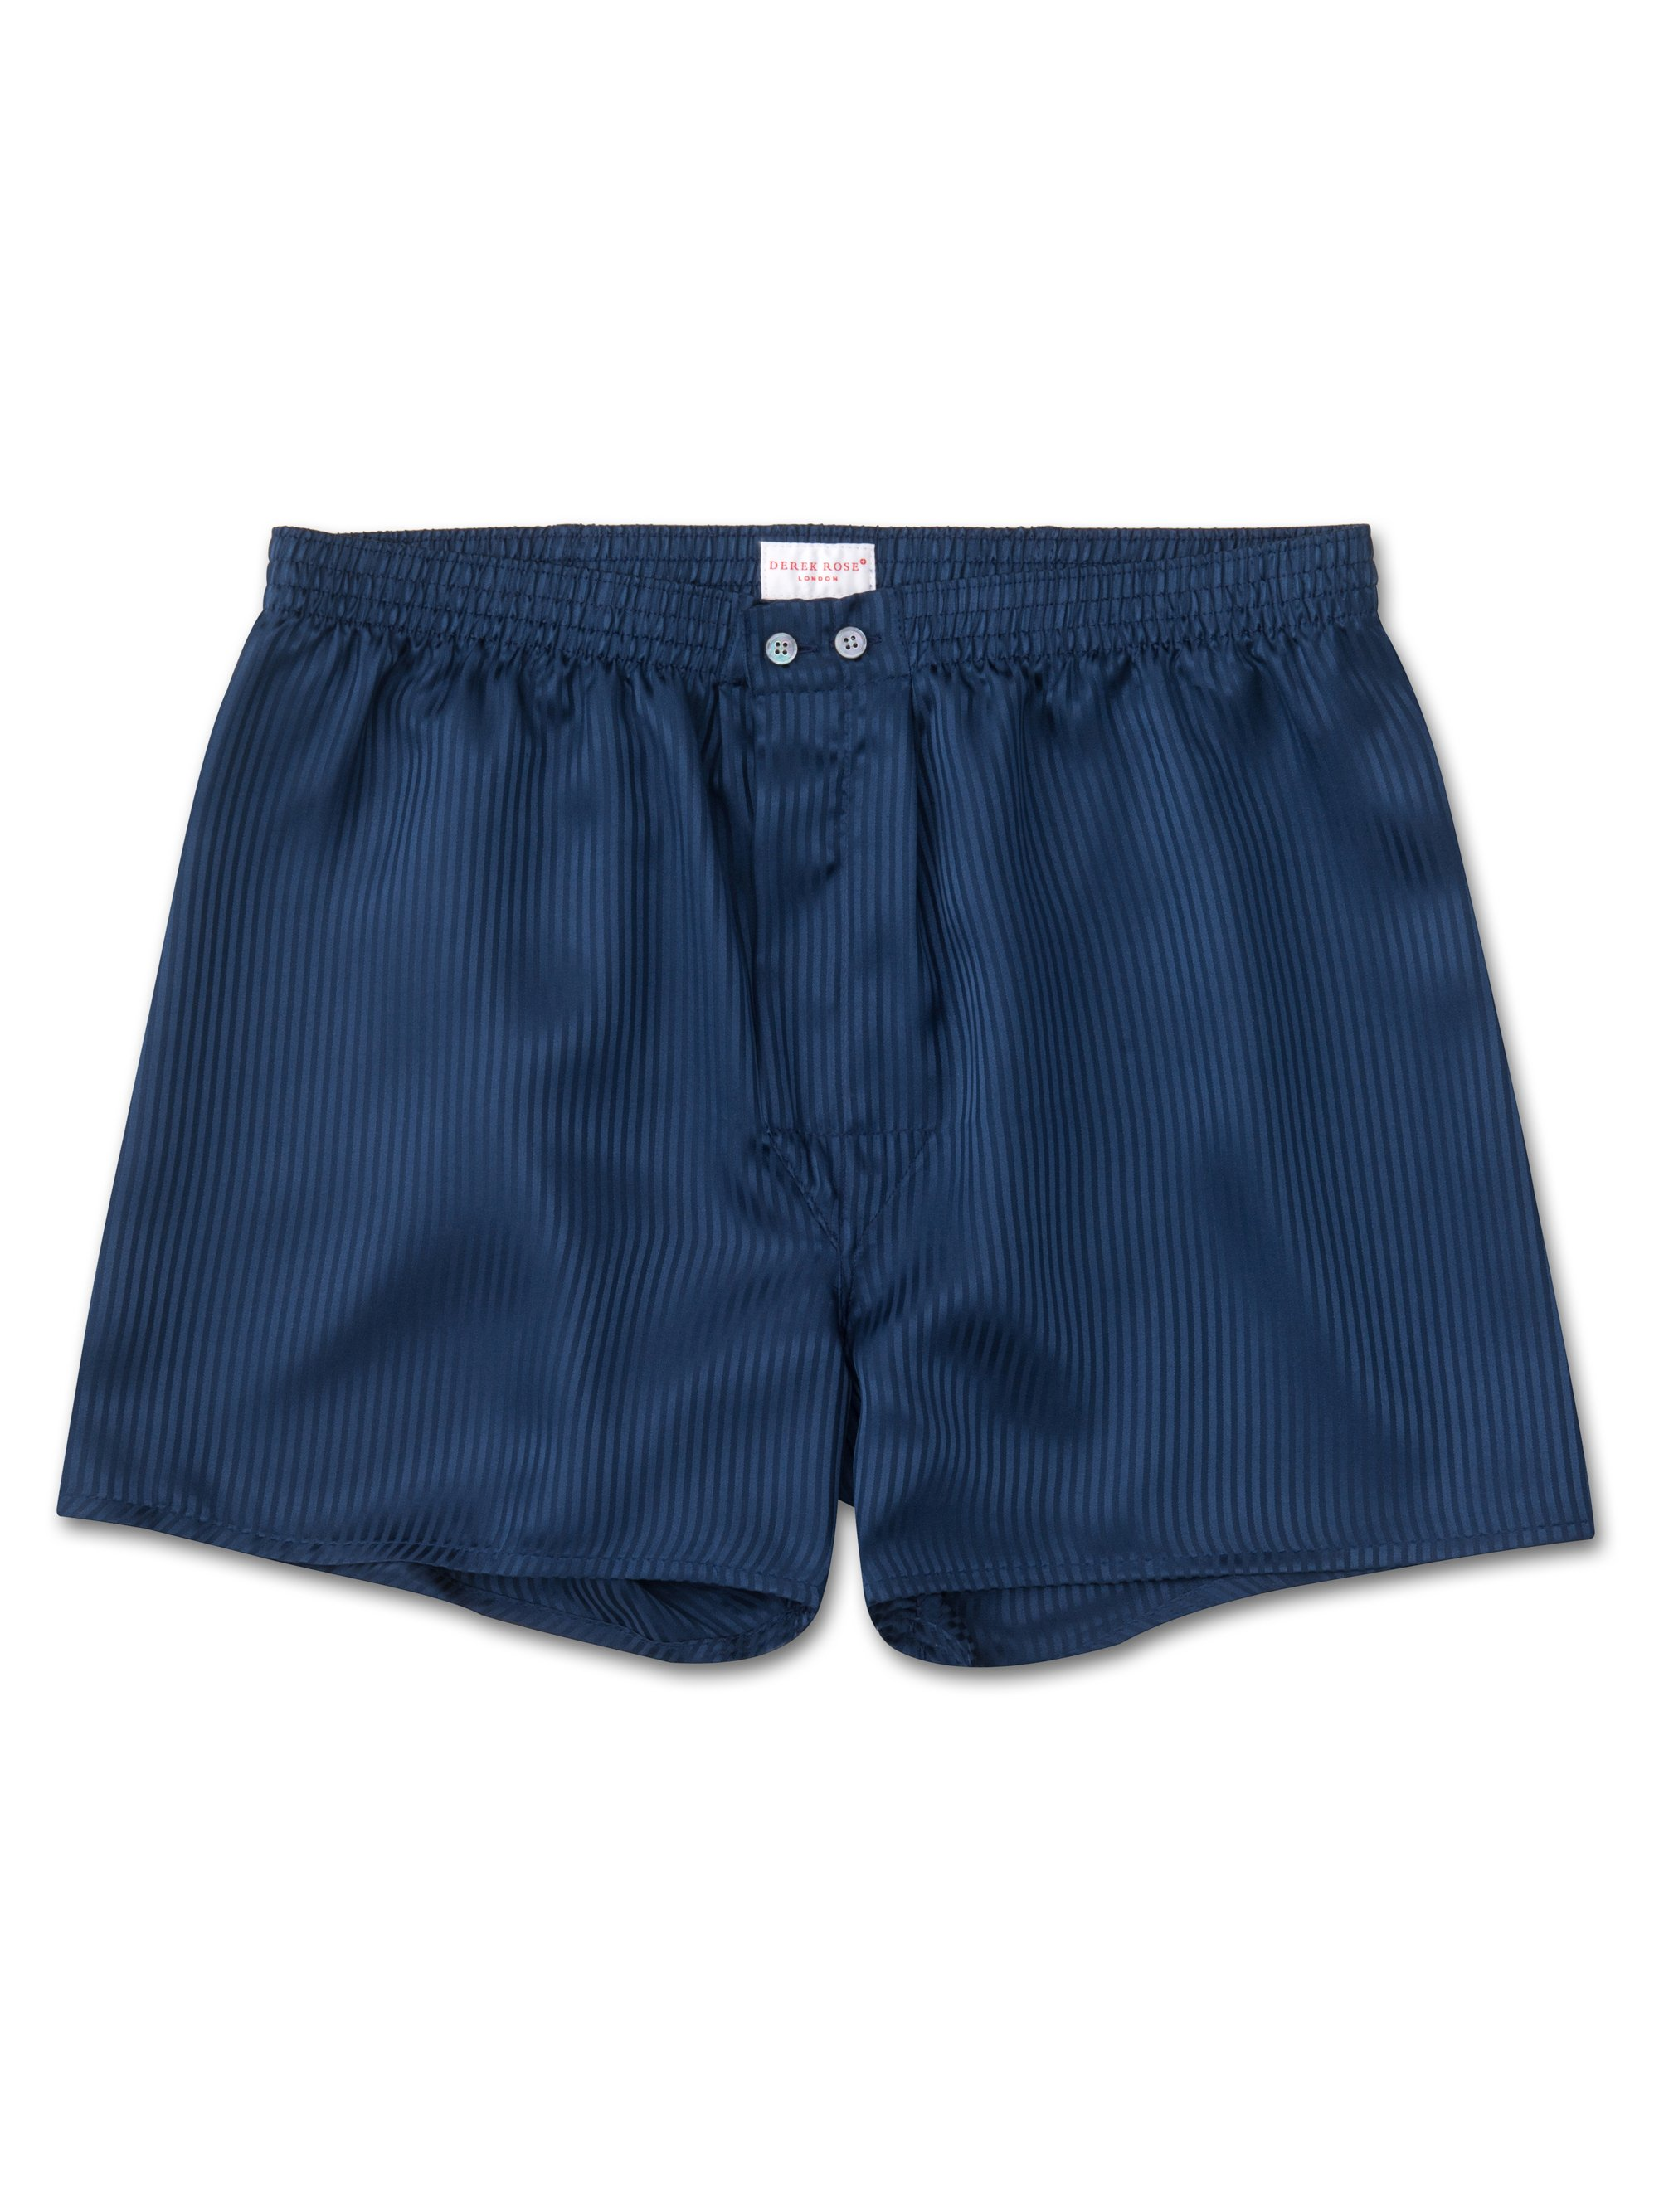 Men's Classic Fit Boxer Shorts Woburn Pure Silk Satin Stripe Navy